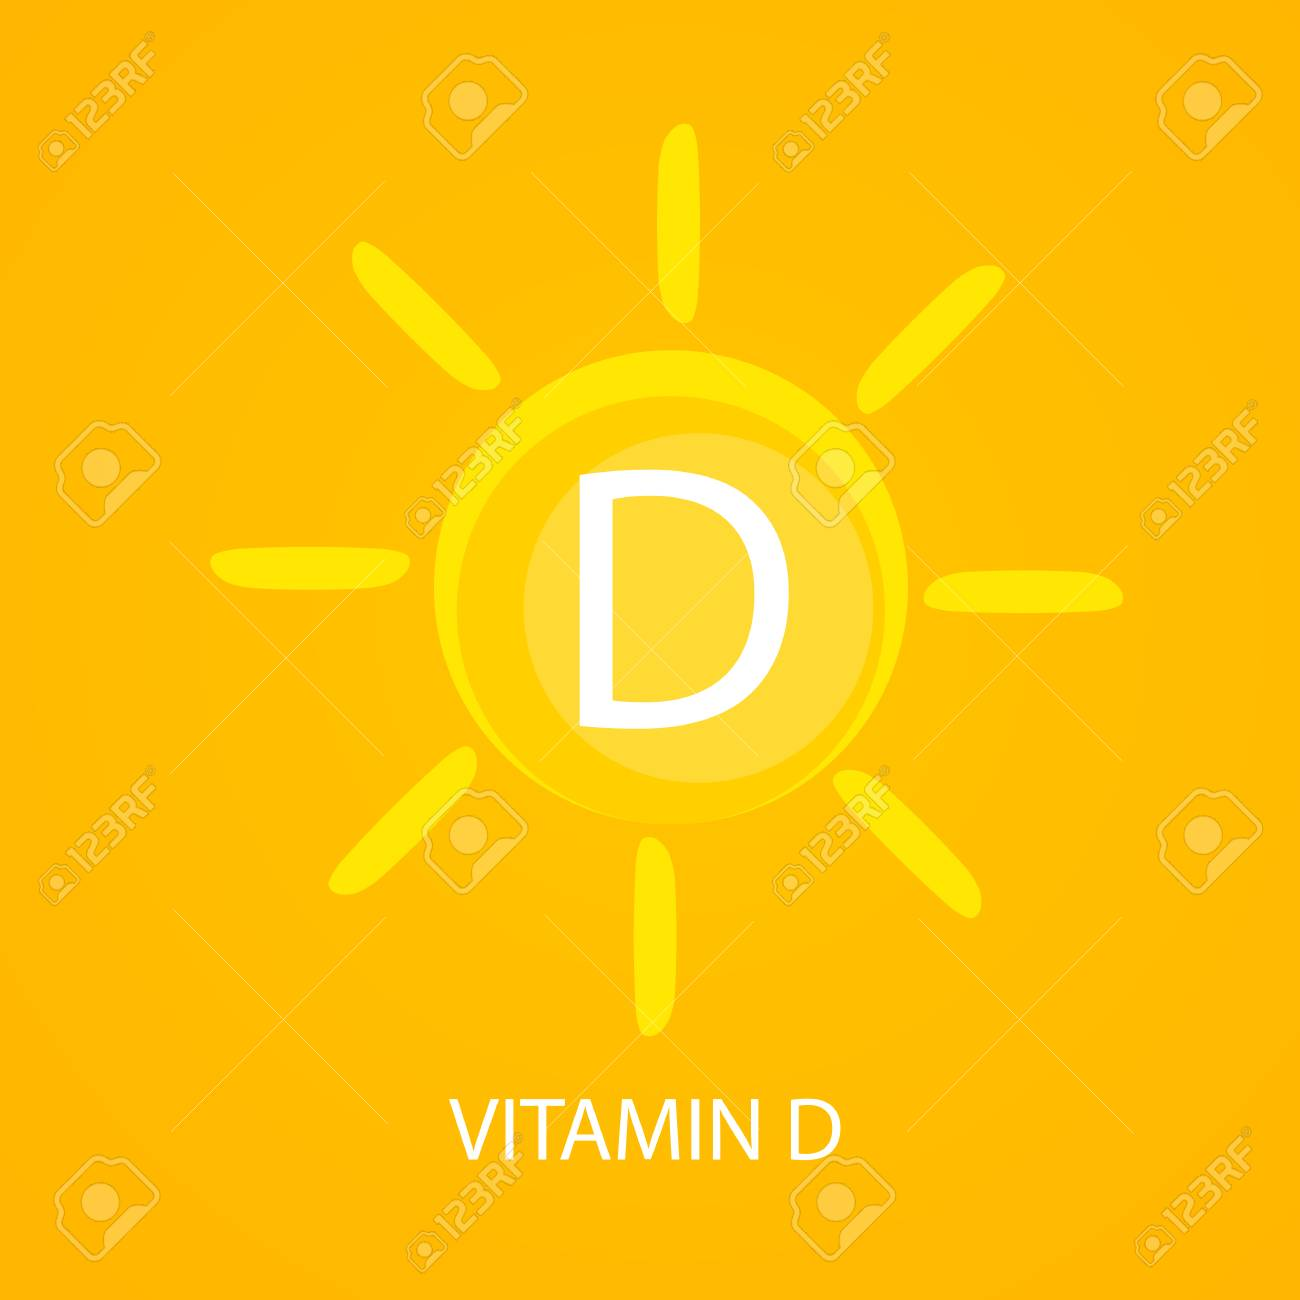 Vitamin D Icon With Sun Vector Illustration Stock Photo Picture And Royalty Free Image Image 90342632